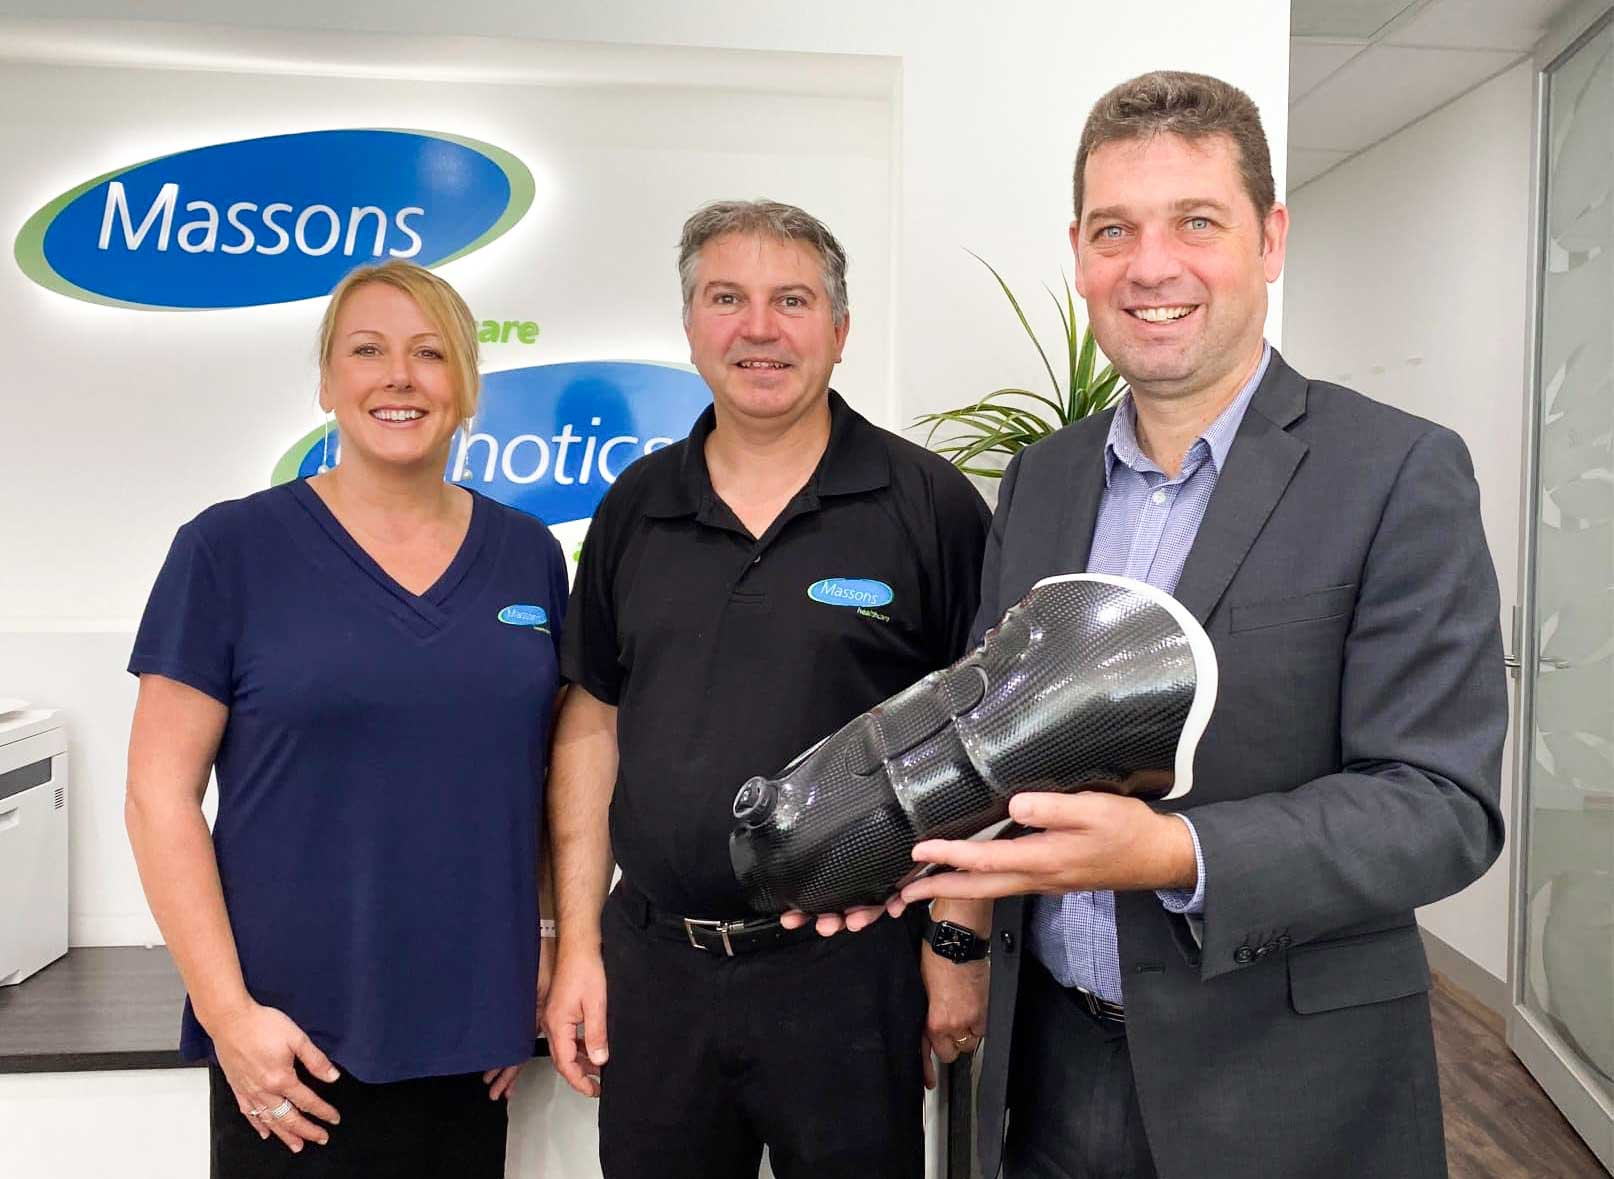 Nick Wakeling MP and Massons Healthcare Owners